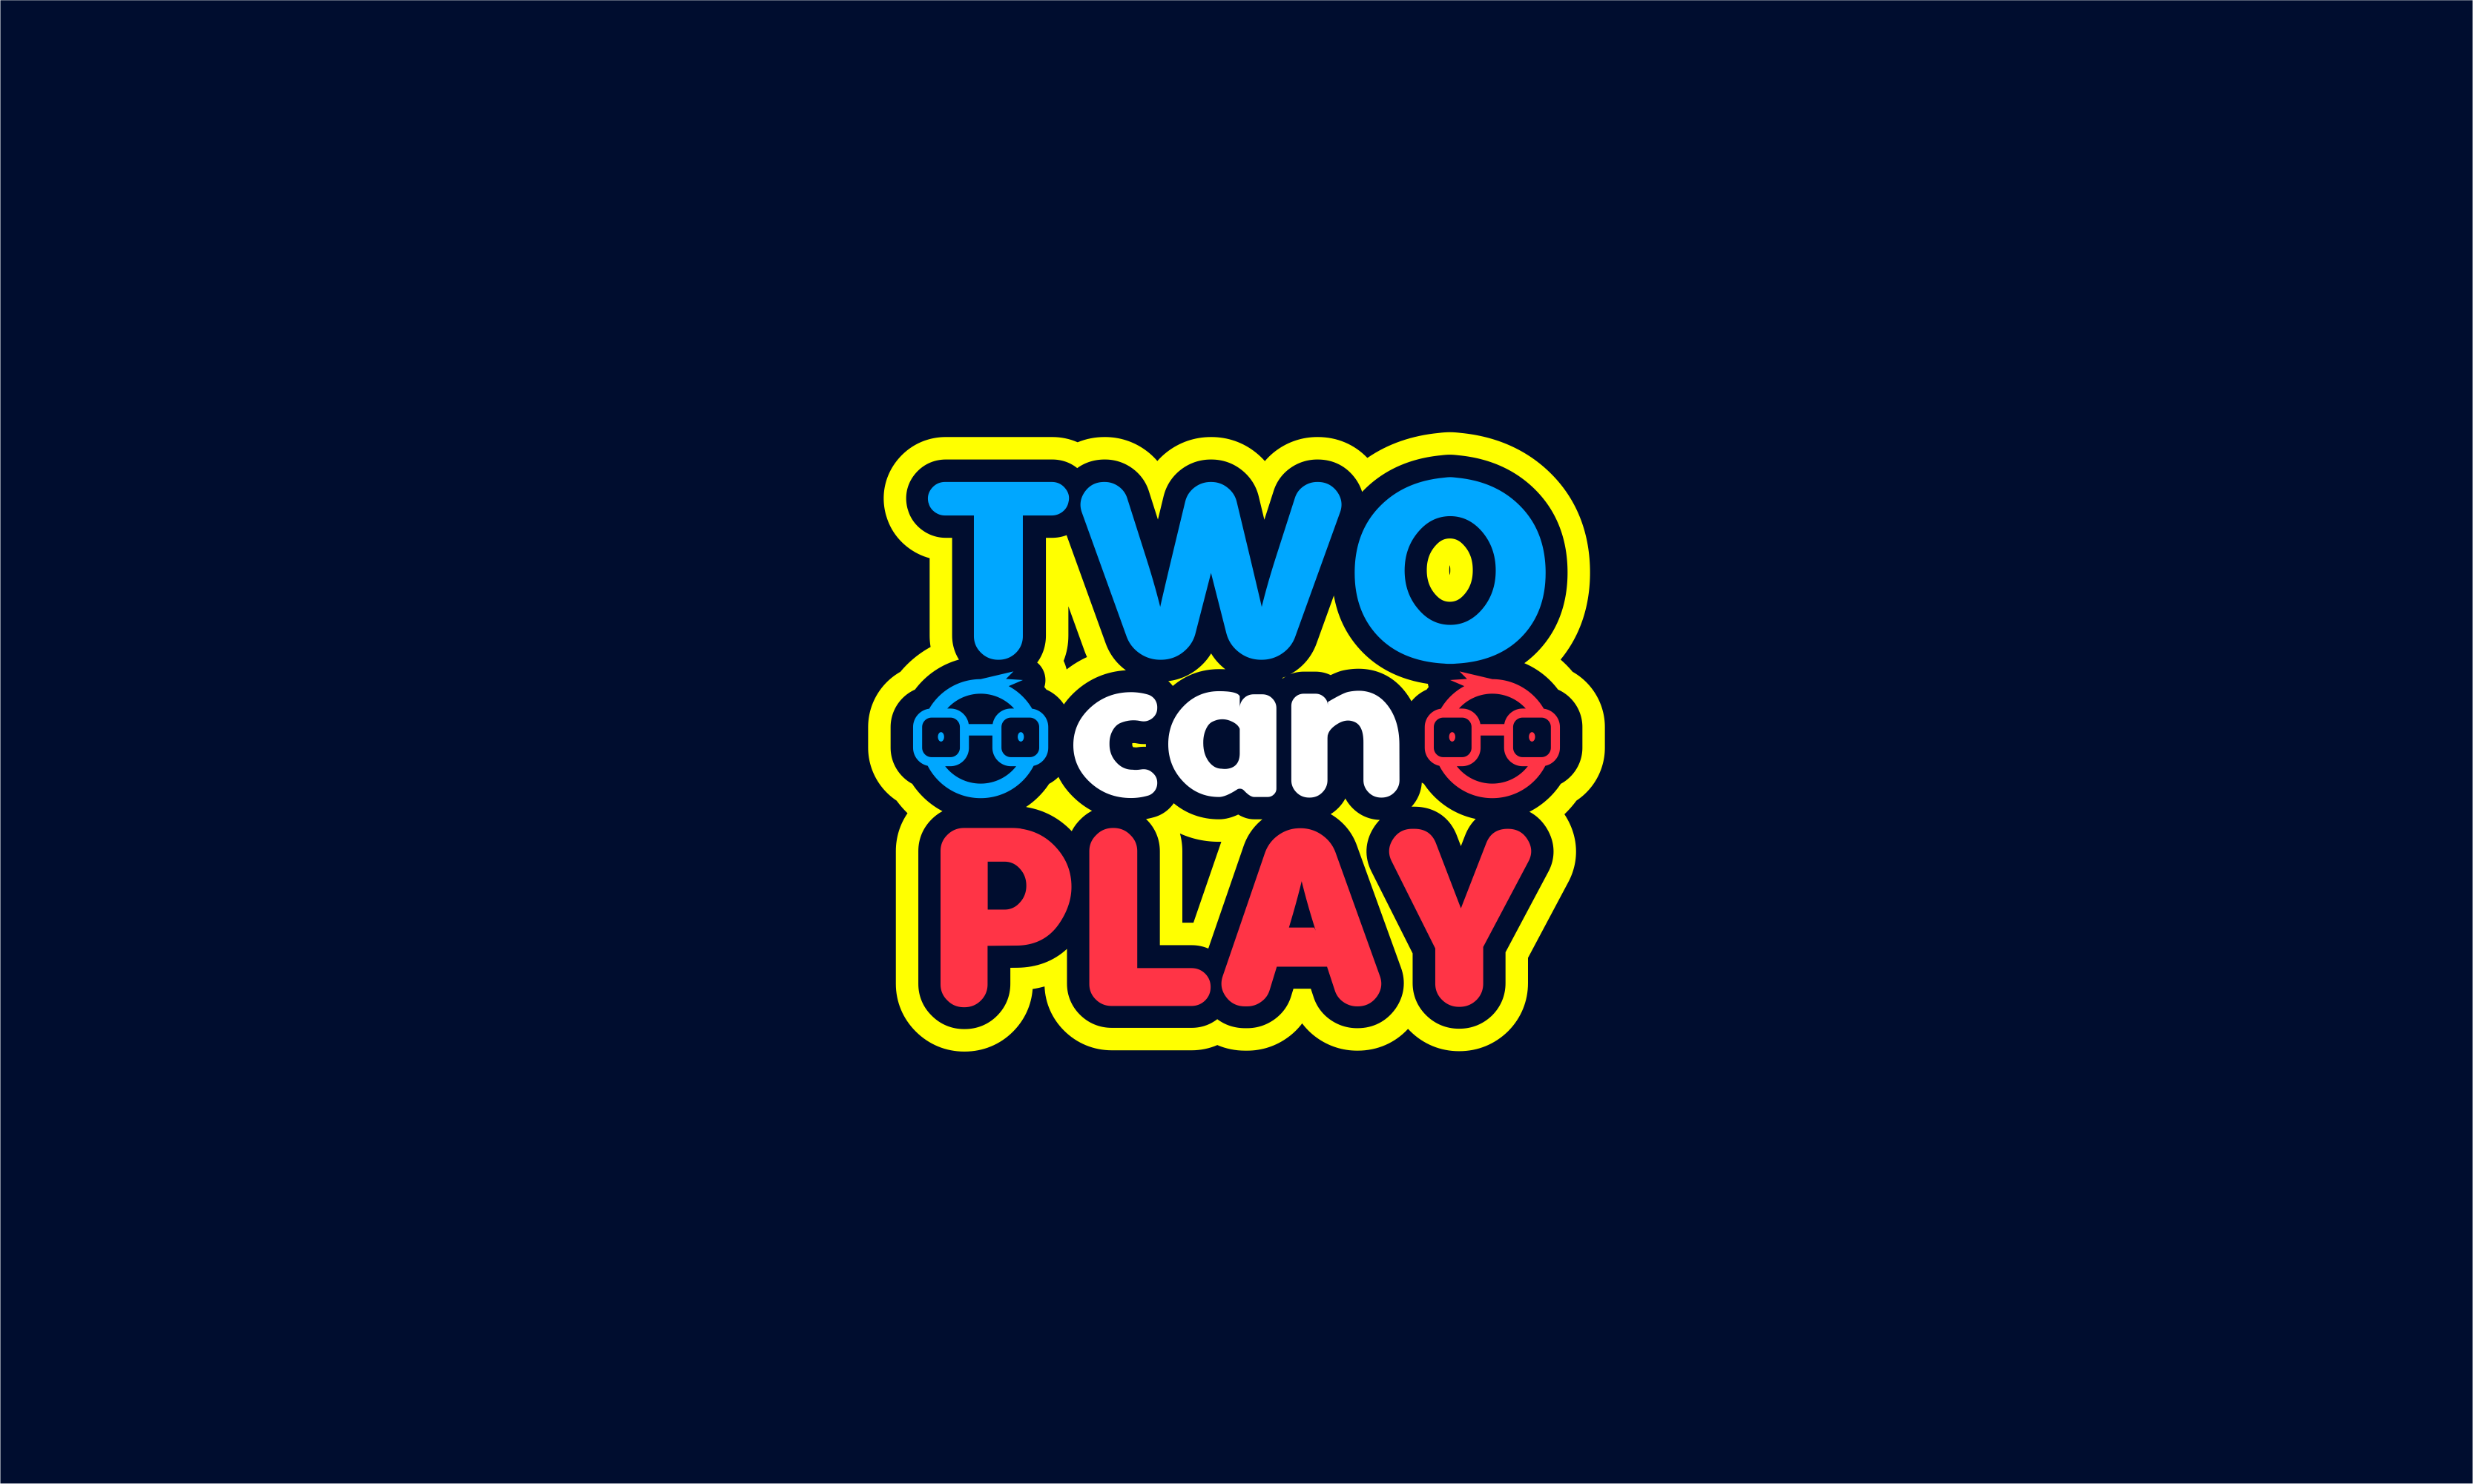 Twocanplay